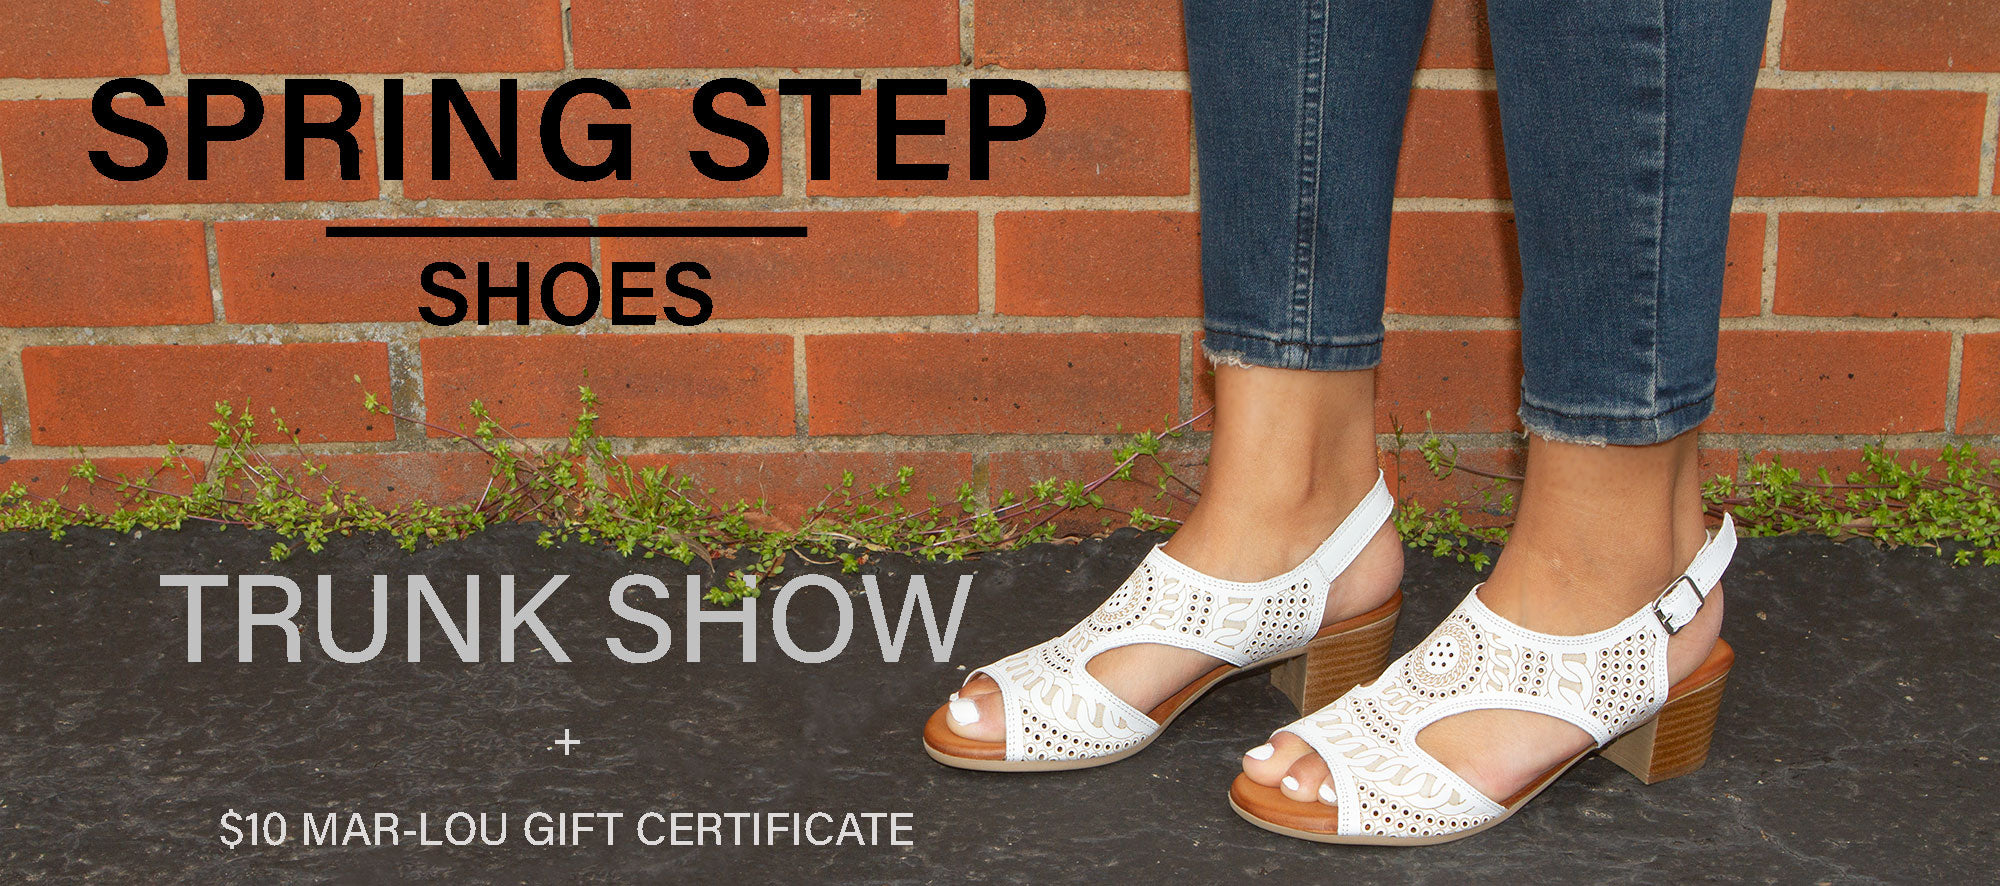 Spring Step Trunk Show Spring/Summer 2021 | Mar-Lou Shoes